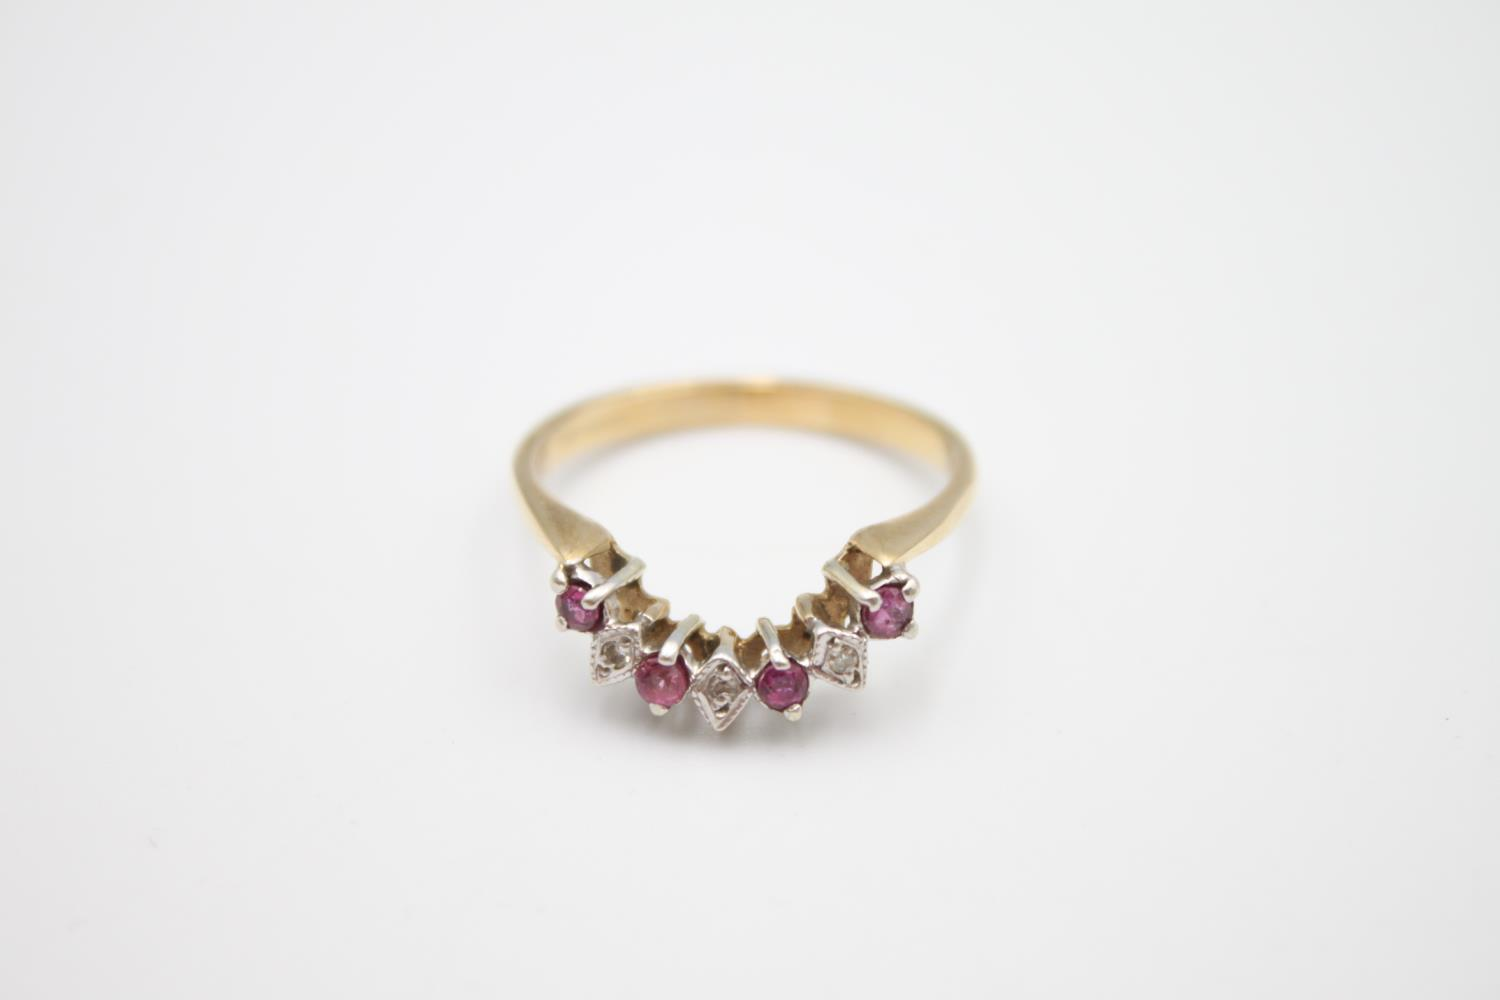 9ct gold diamond & ruby wed-fit chevron ring 2.7g Size S